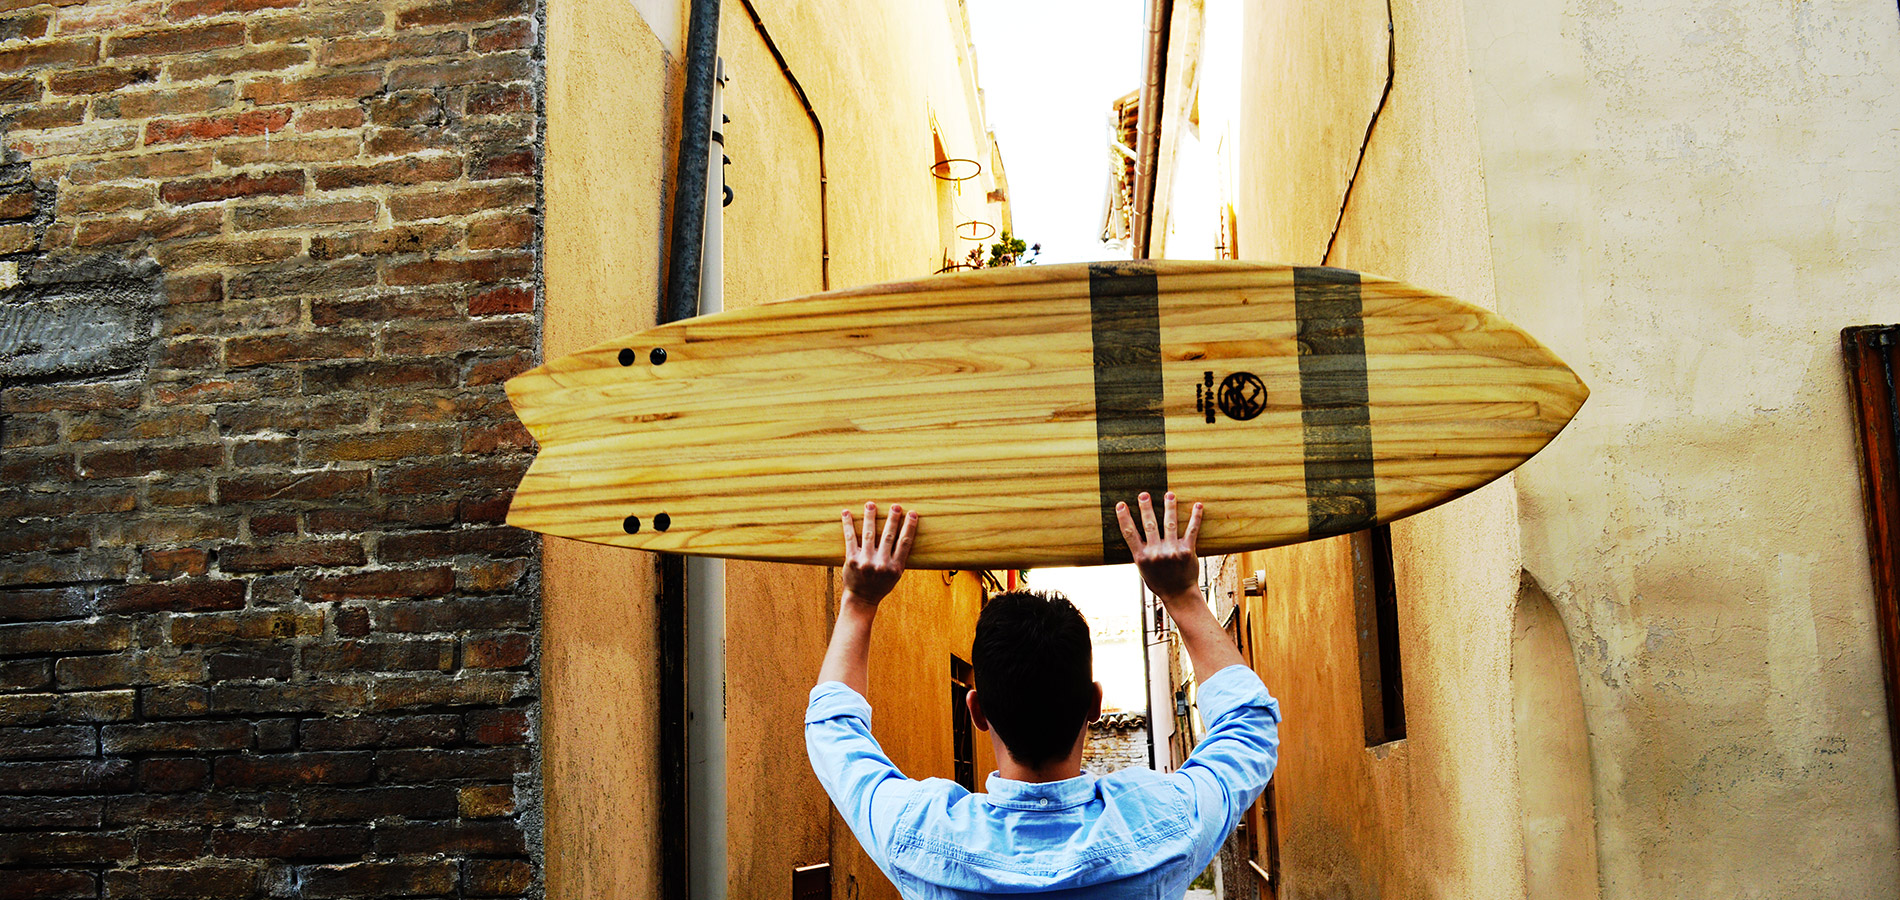 how to make a wooden fish surfboard from scratch